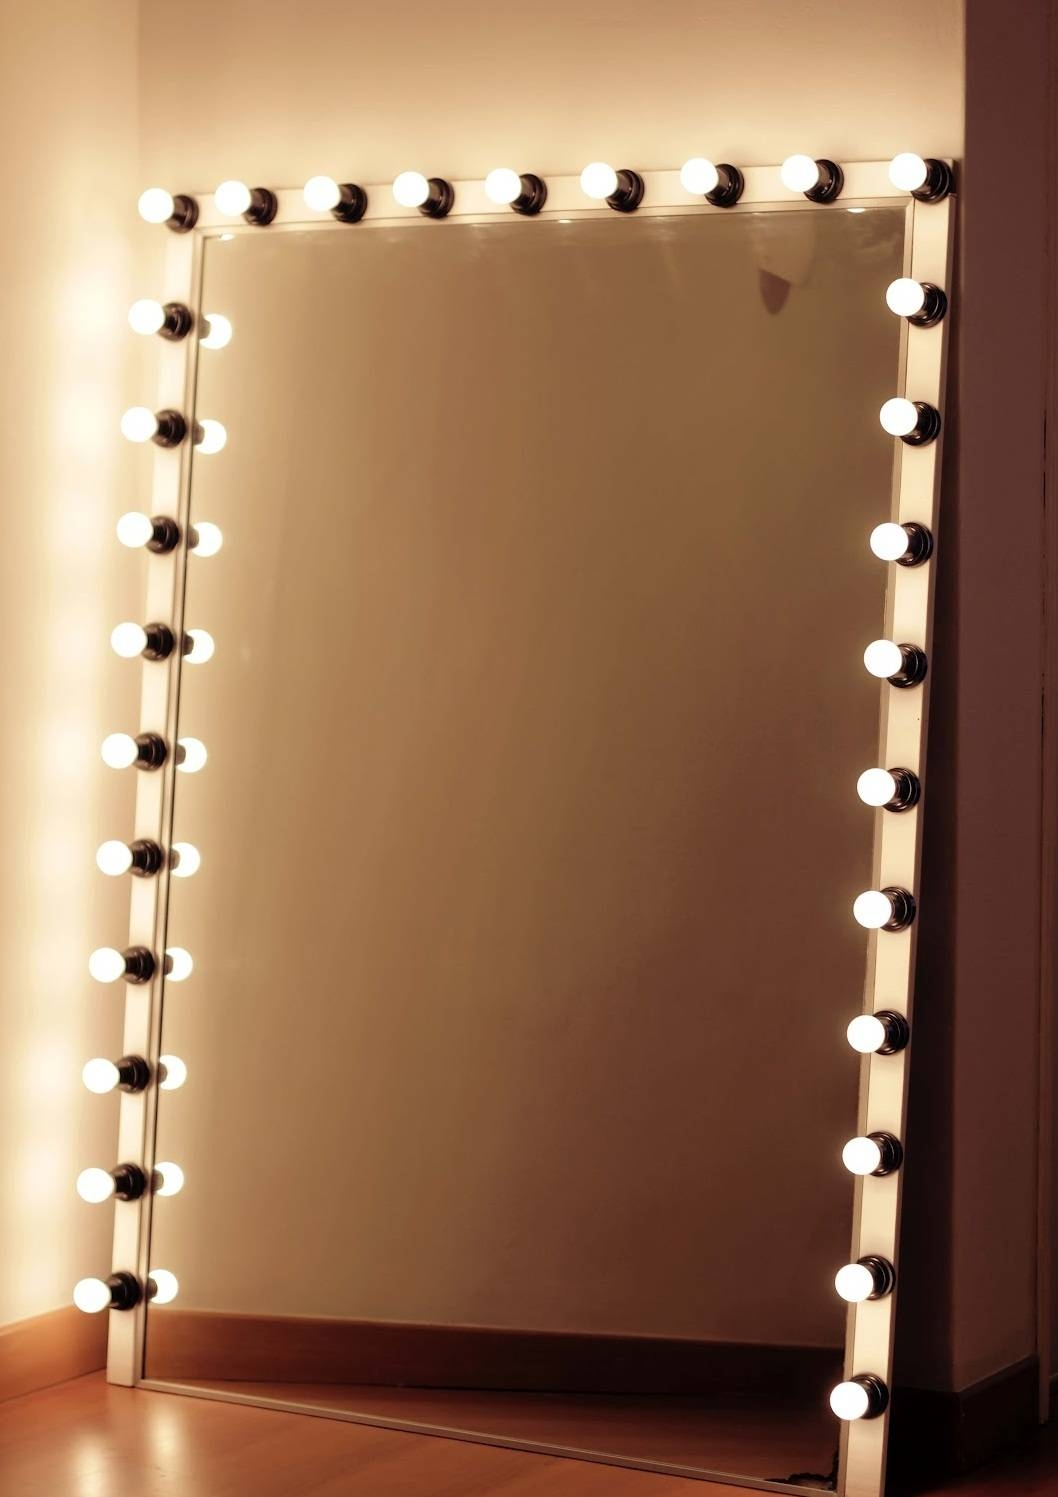 Decorations : Excellent Squre Mirrors With White Light Bulbs And intended for Cream Standing Mirrors (Image 11 of 25)